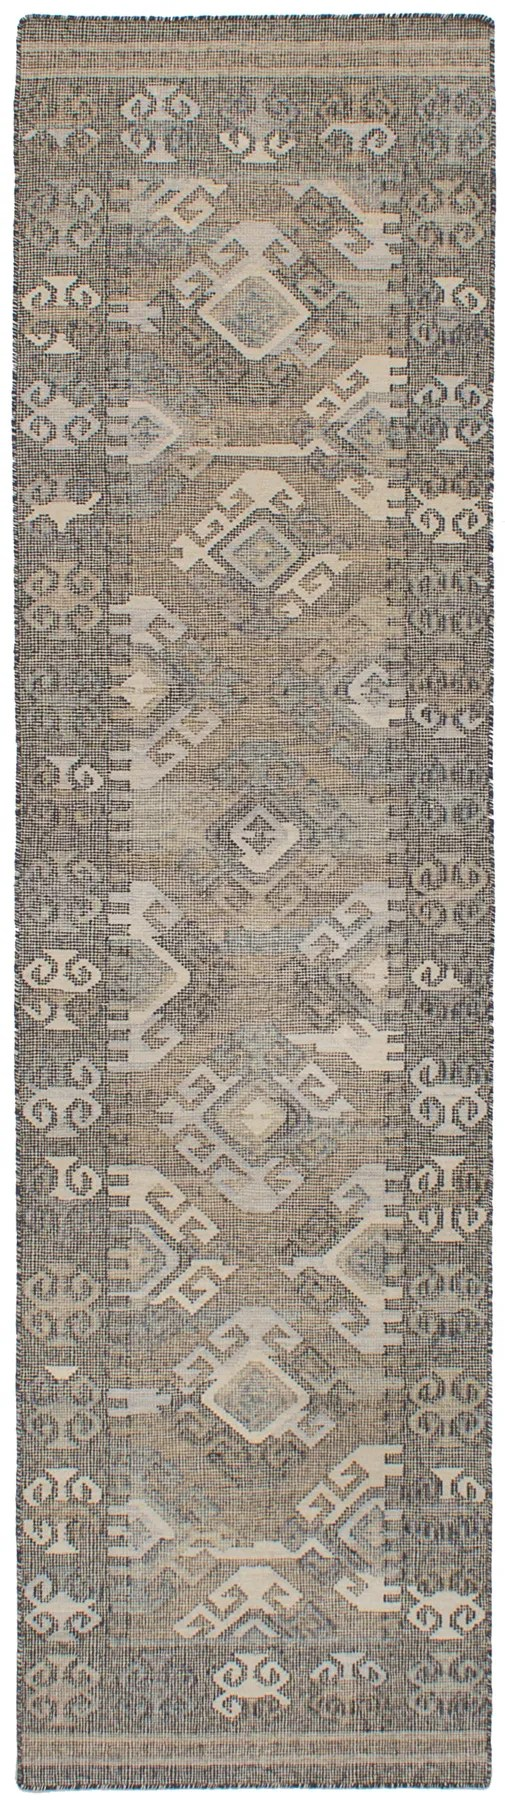 Bevers Hand Flat Woven Wool Gray Area Rug Rug Size: Runner 2'6